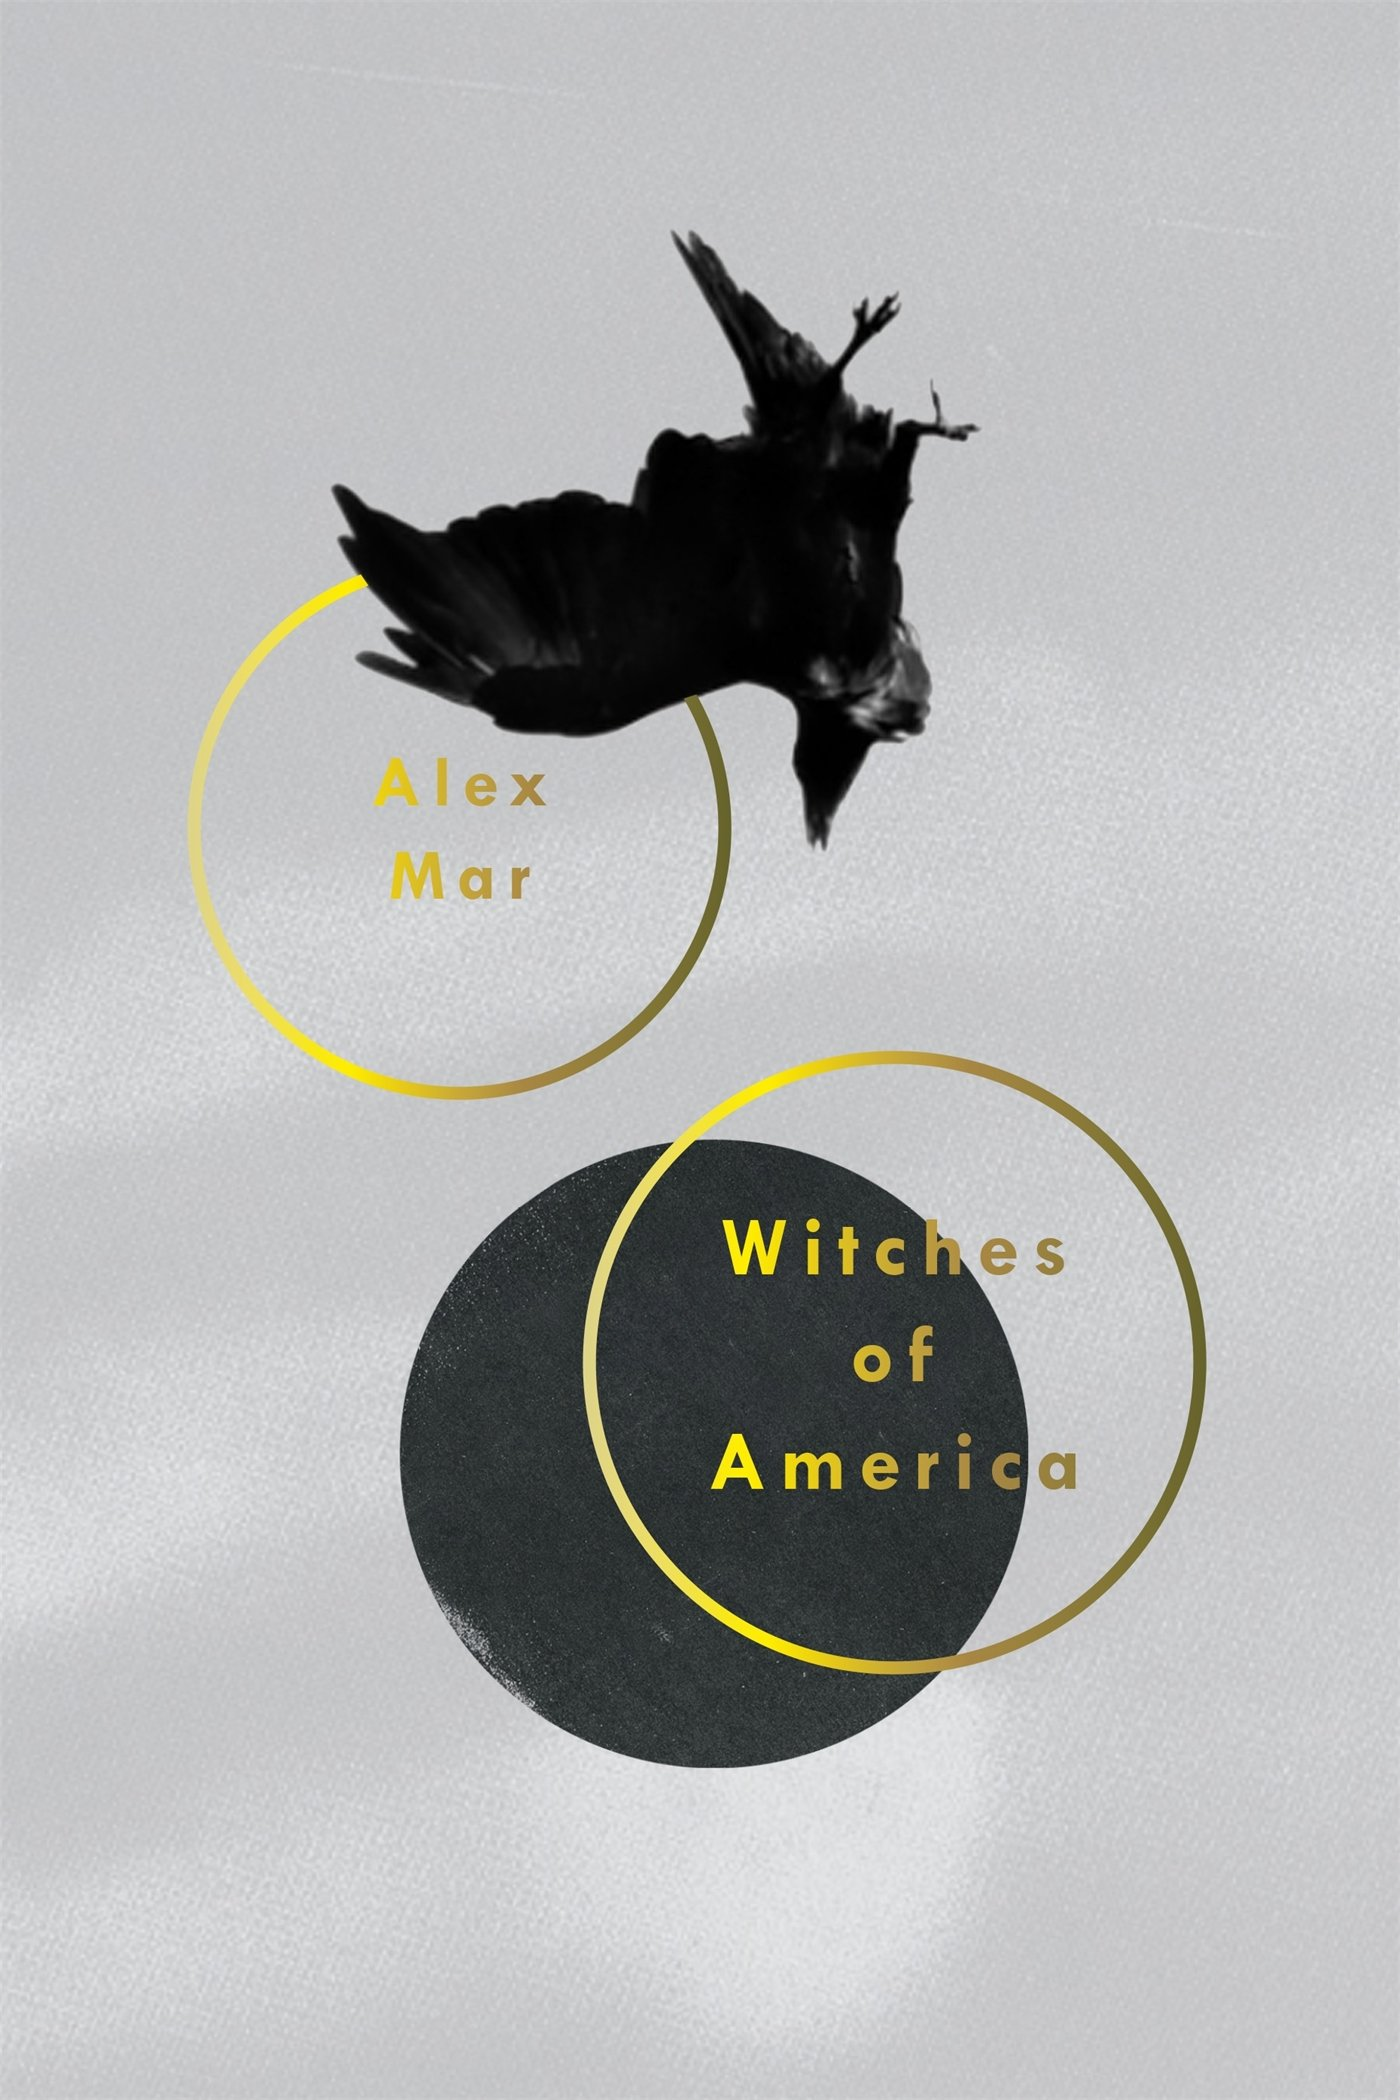 WITCHES OF AMERICA ALEX MAR PDF DOWNLOAD